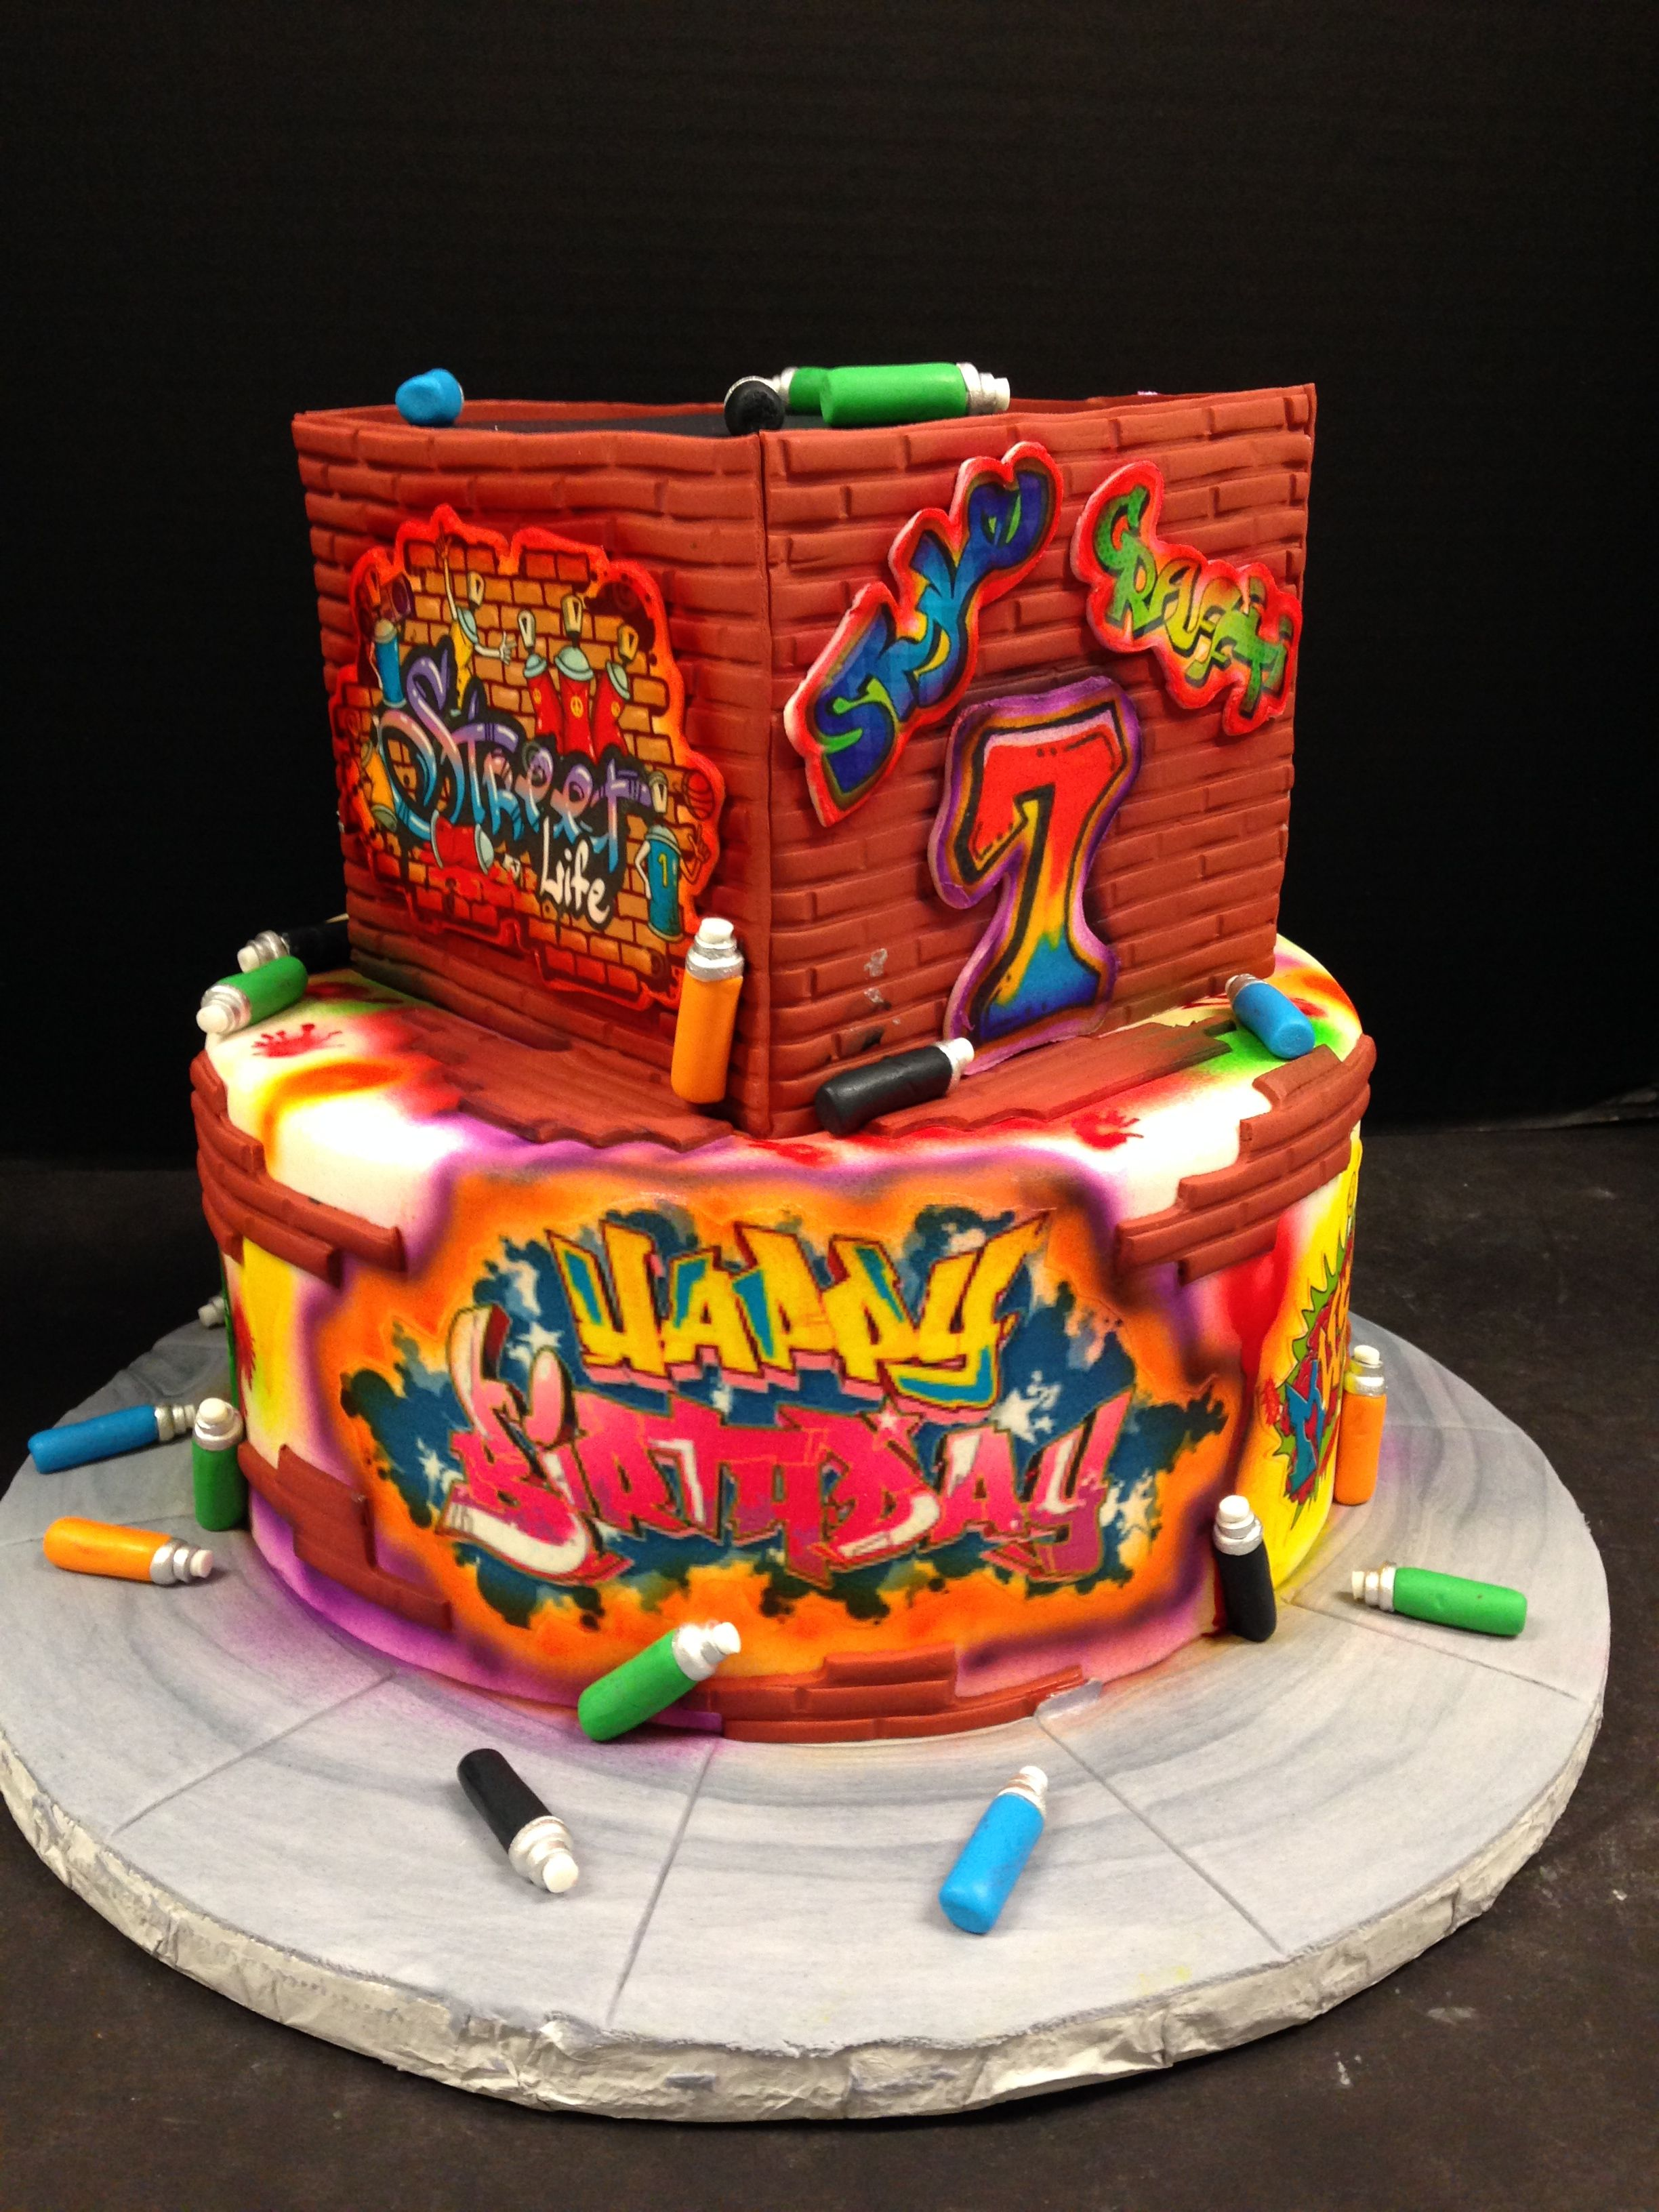 Graffiti and Glow themed 2tier cake perfect for your next Glow